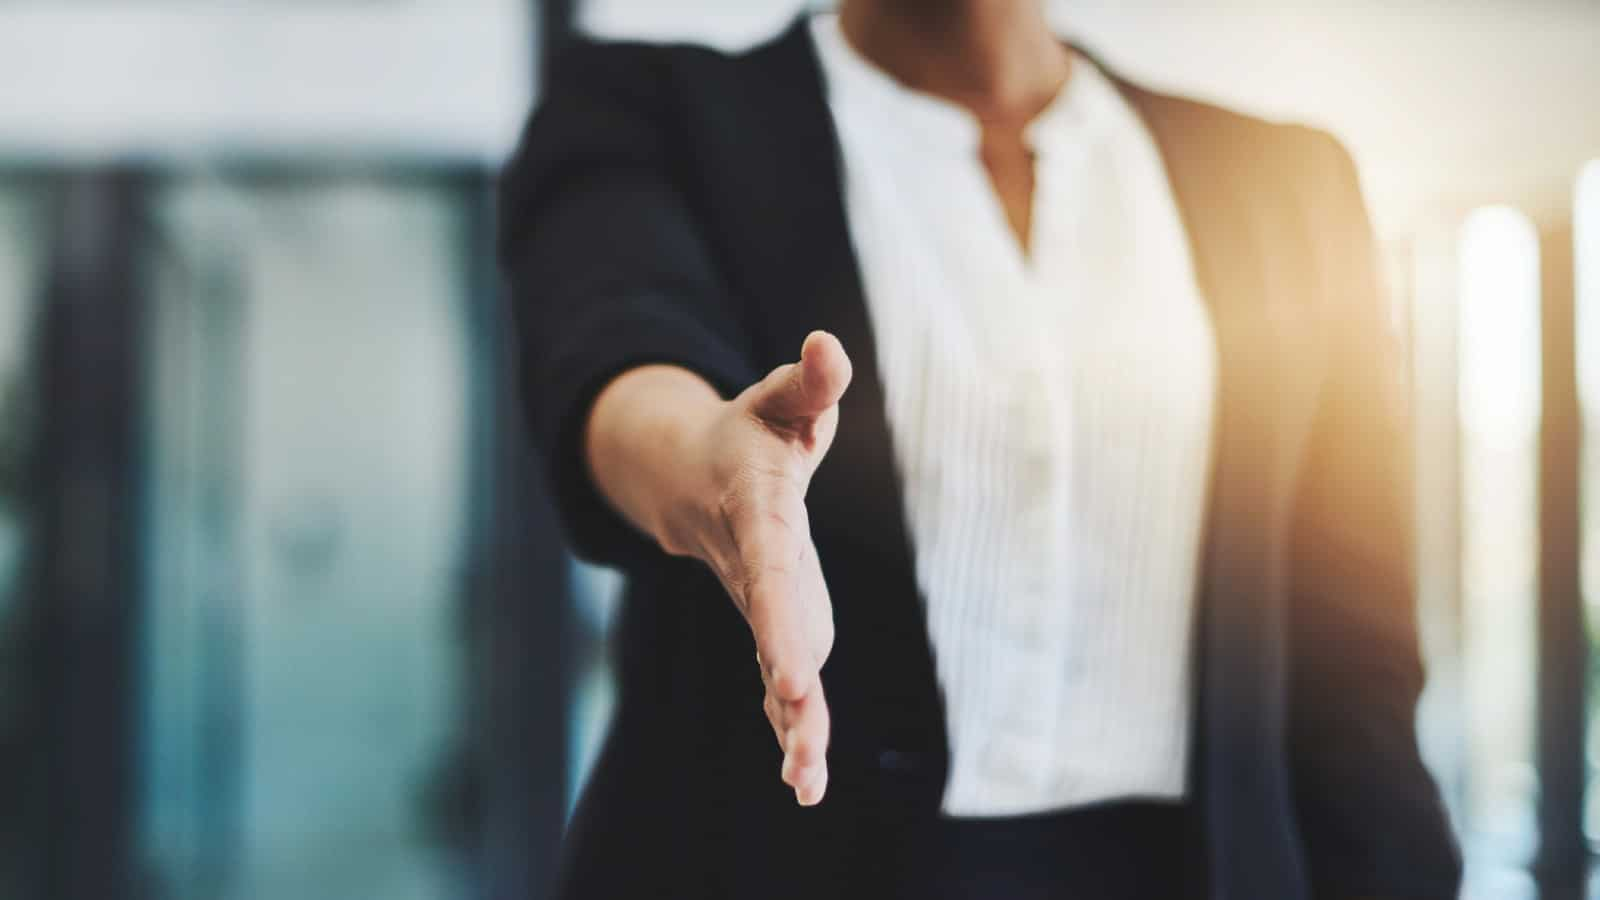 businesswoman holds hand out to shake